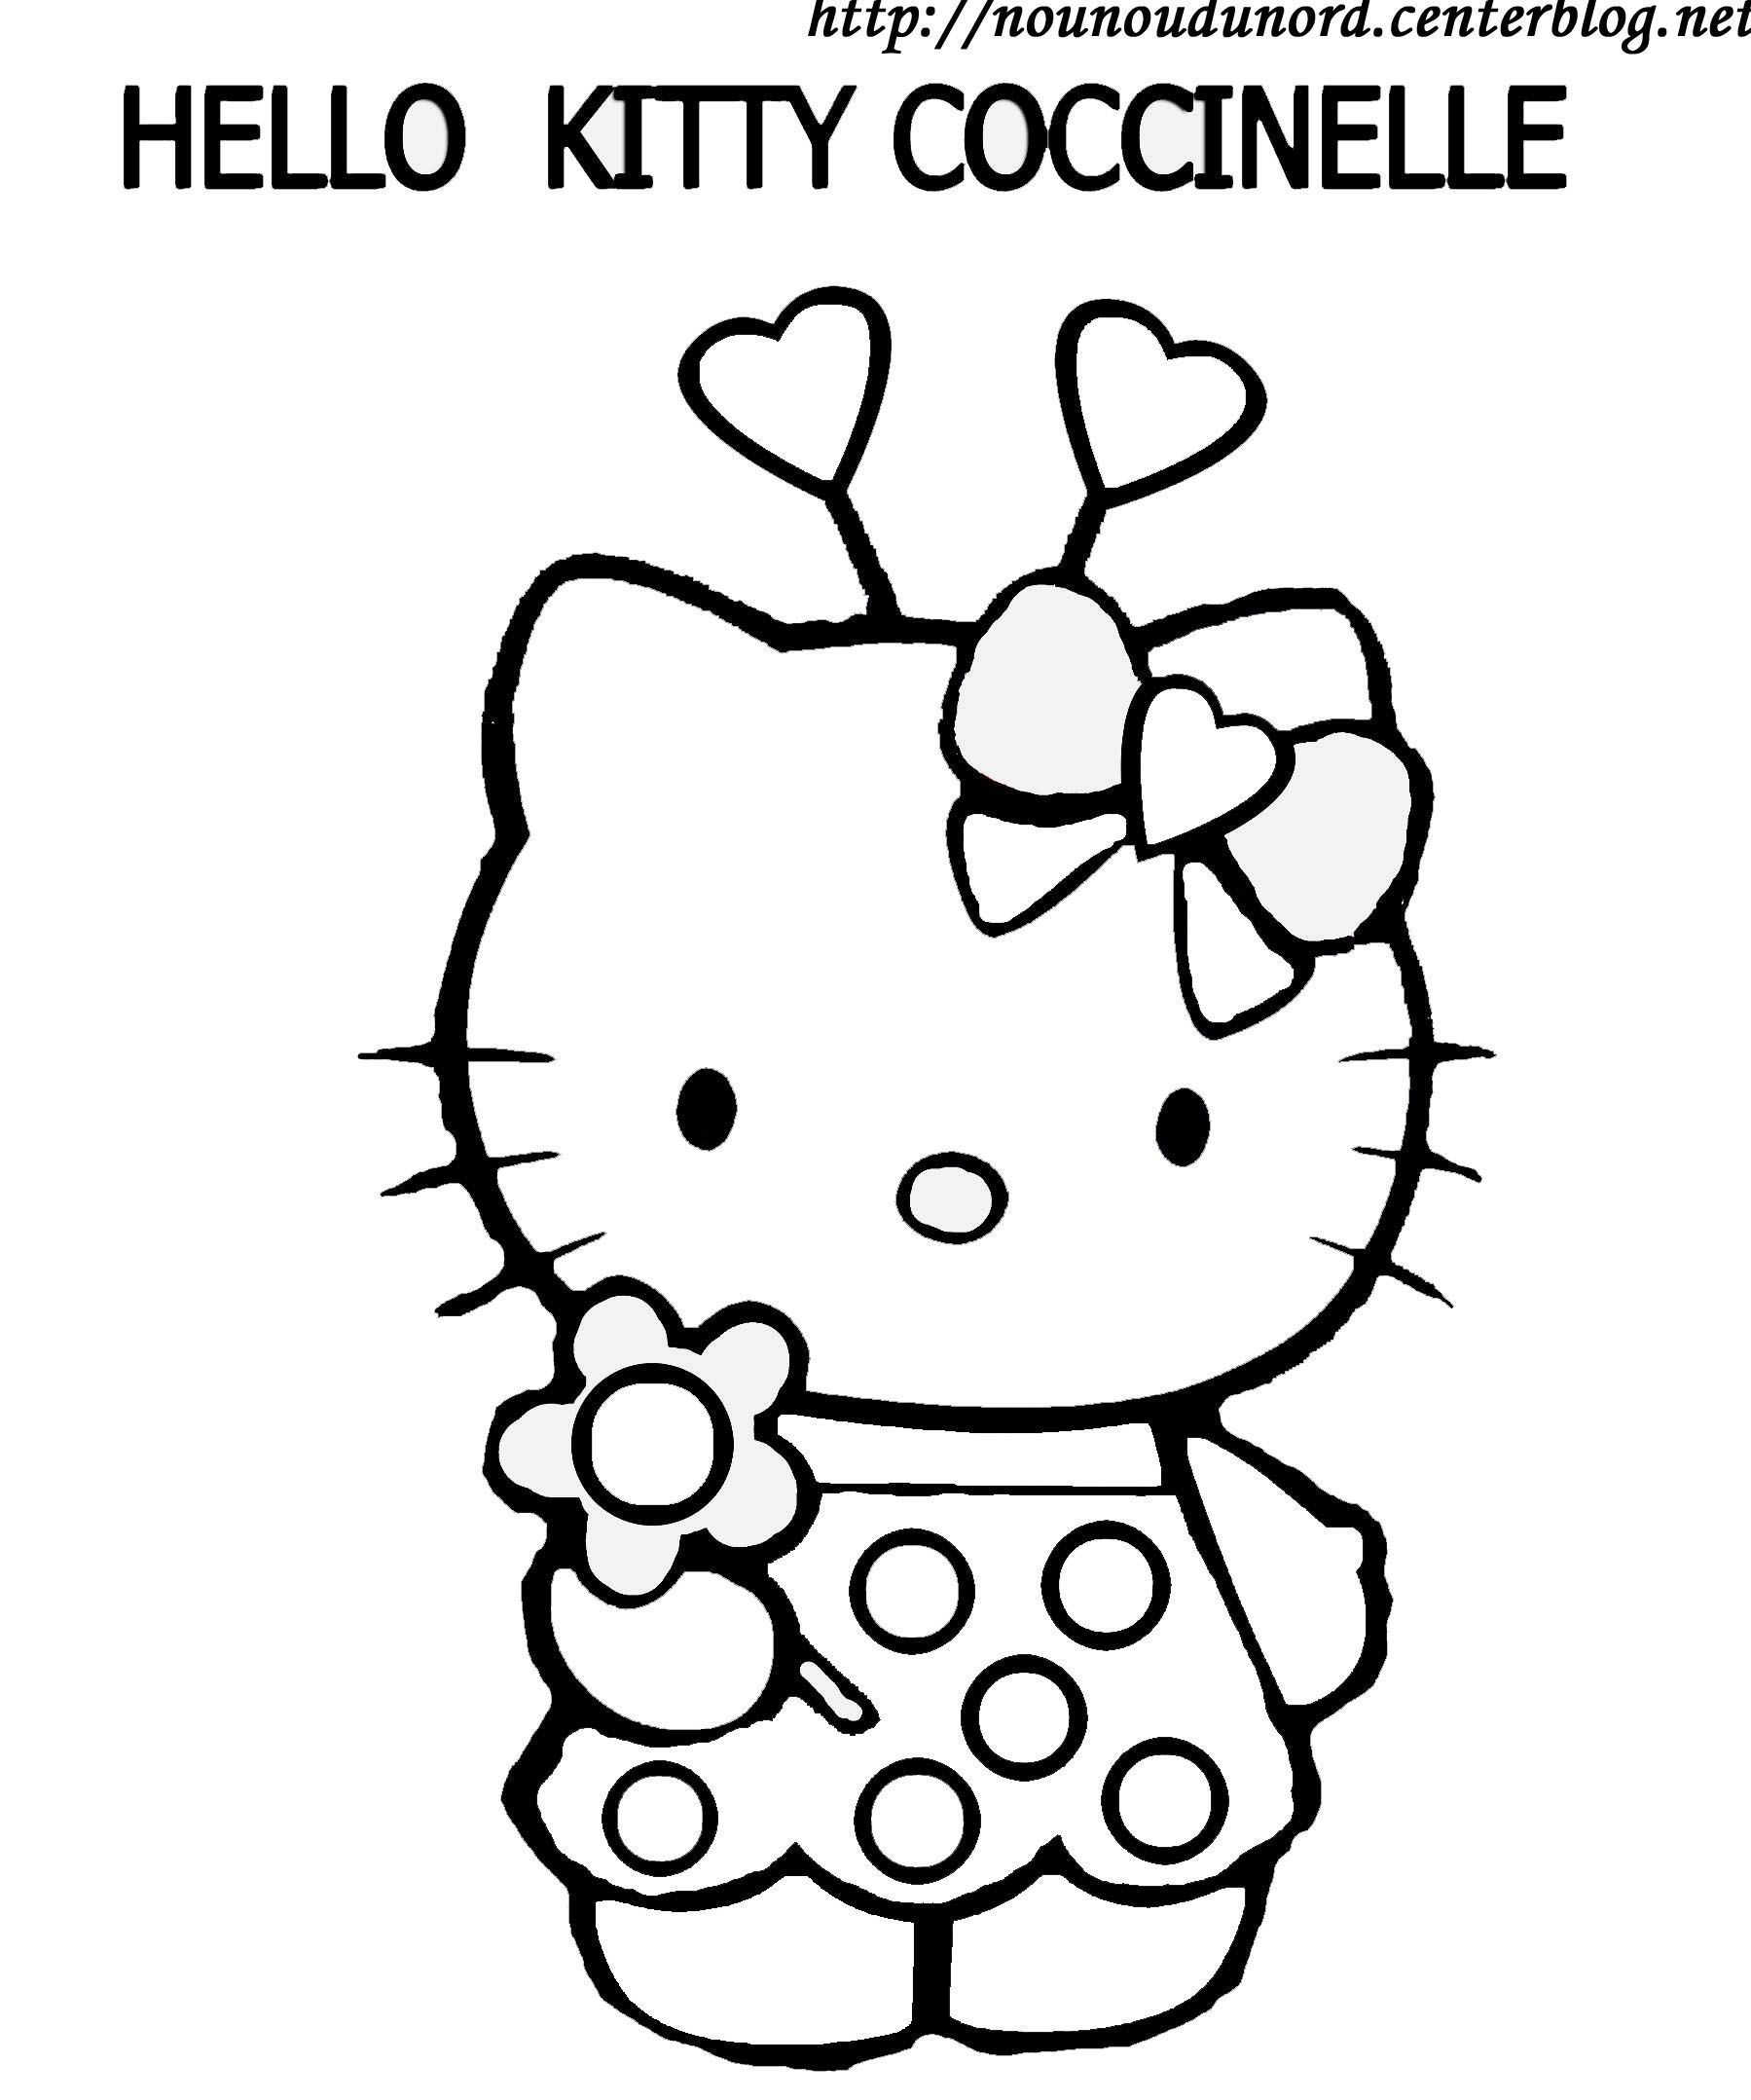 Coloriage hello kitty a imprimer - Coloriage tete hello kitty a imprimer ...